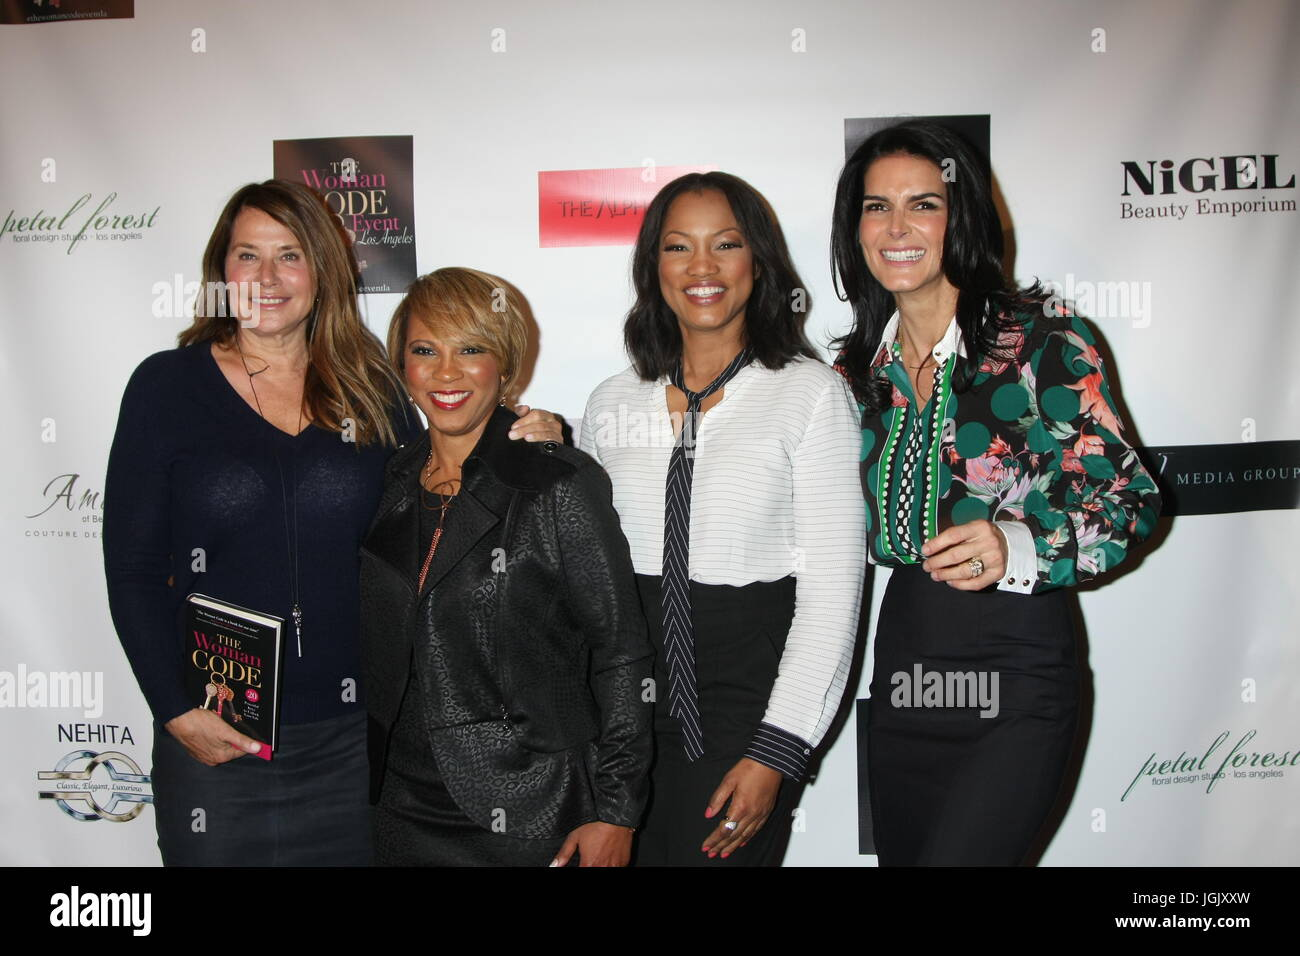 Los Angeles, CA, USA. 29th Jan, 2016. LOS ANGELES - JAN 29: Lorraine Bracco, Sophia A. Nelson, Garcelle Beauvais, - Stock Image